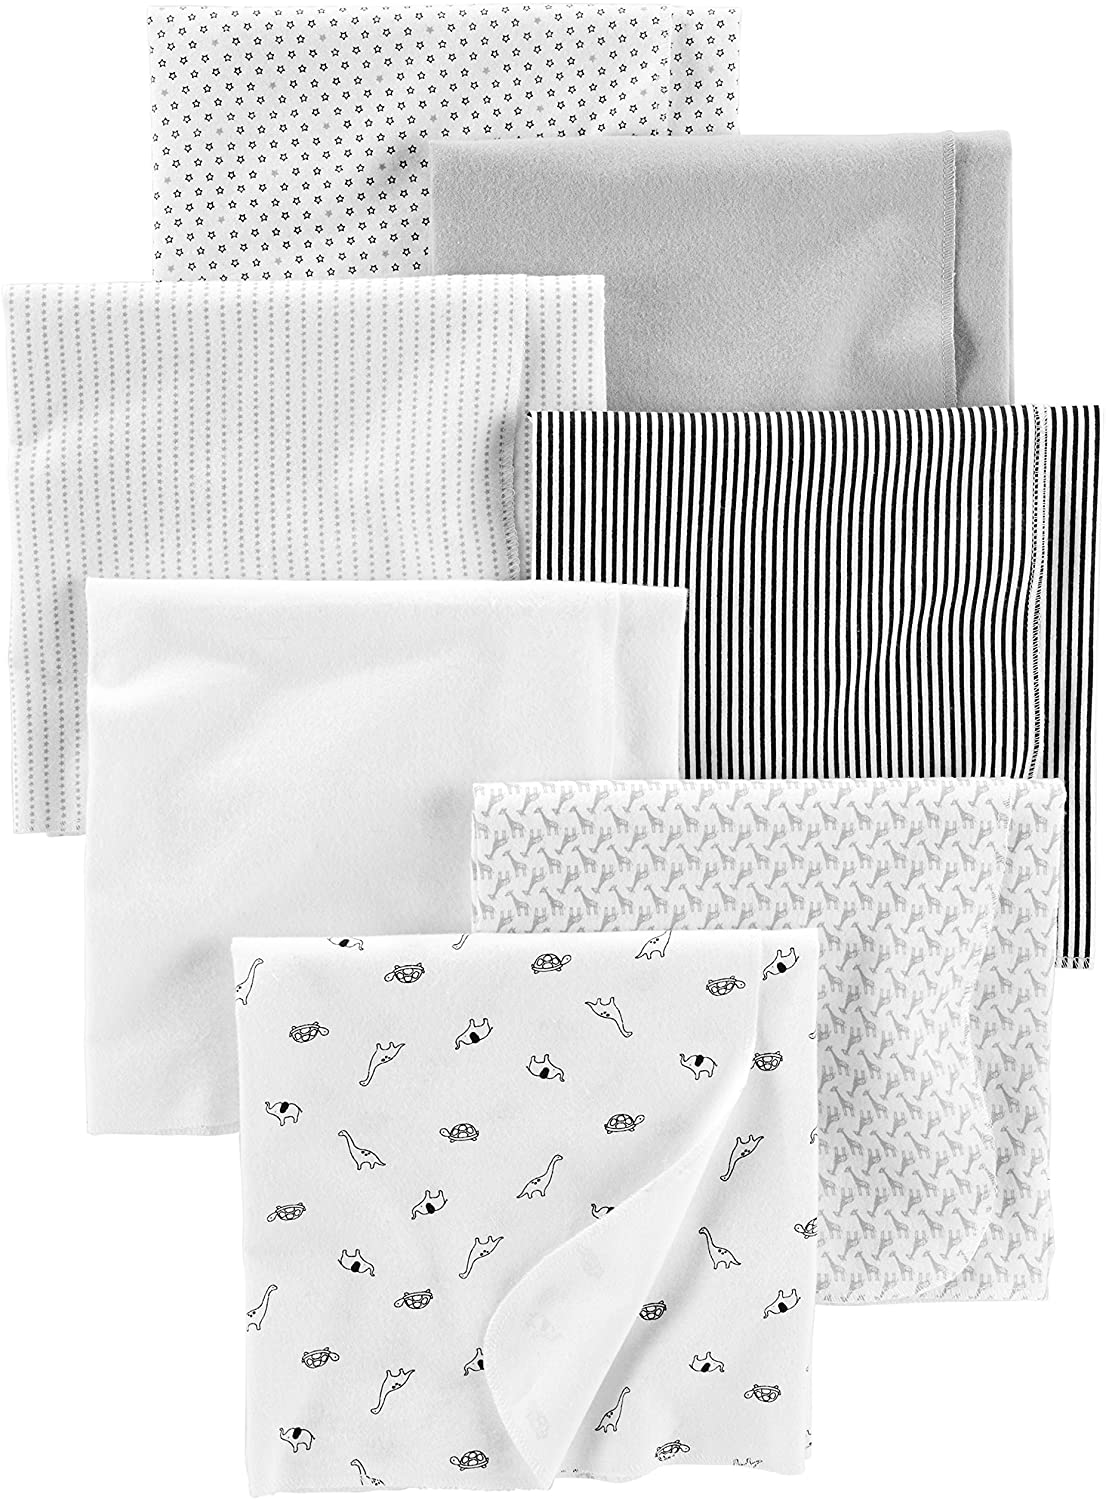 Simple Joys by Carter's Baby Unisex 7-Pack Flannel Receiving Blankets, Gray/White/Black, One Size: Clothing